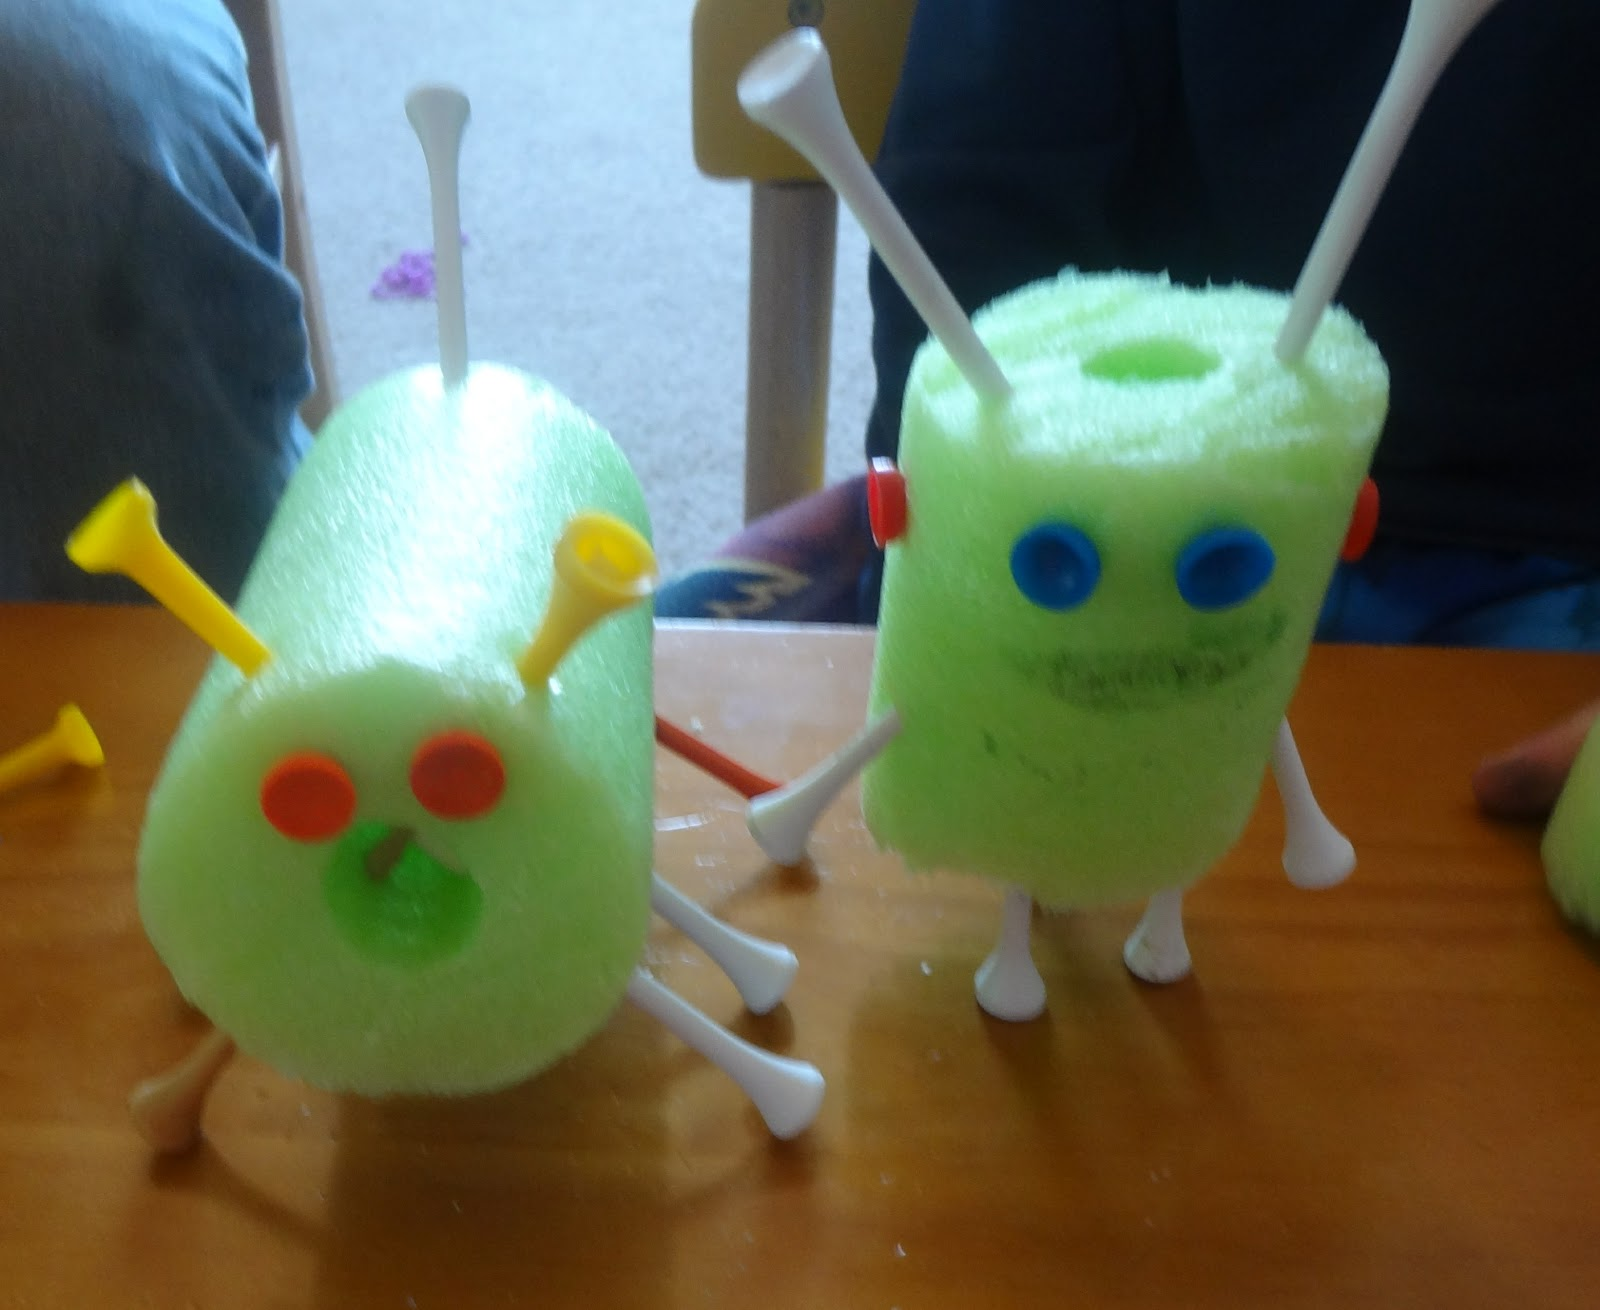 Painting With Pool Noodles For a Fun Project Is Easy Art ...  |Art Bot Pool Noodle